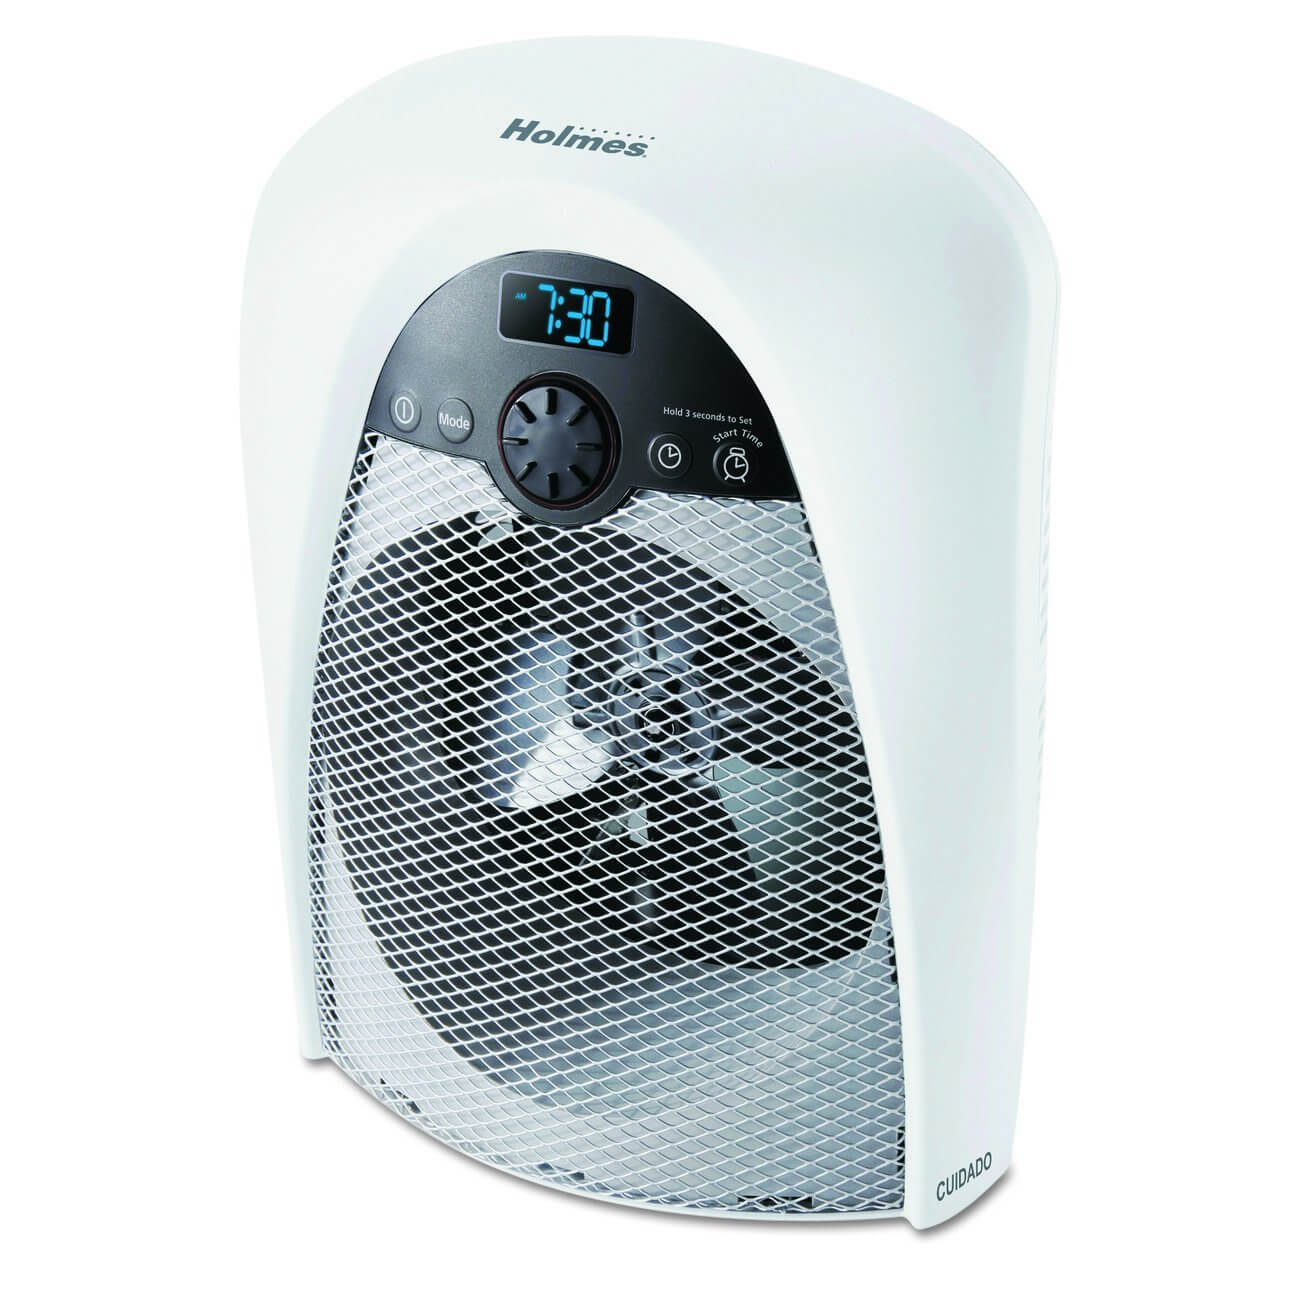 Holmes Digital Bathroom Heater Fan With Pre Heat Timer And Max Output